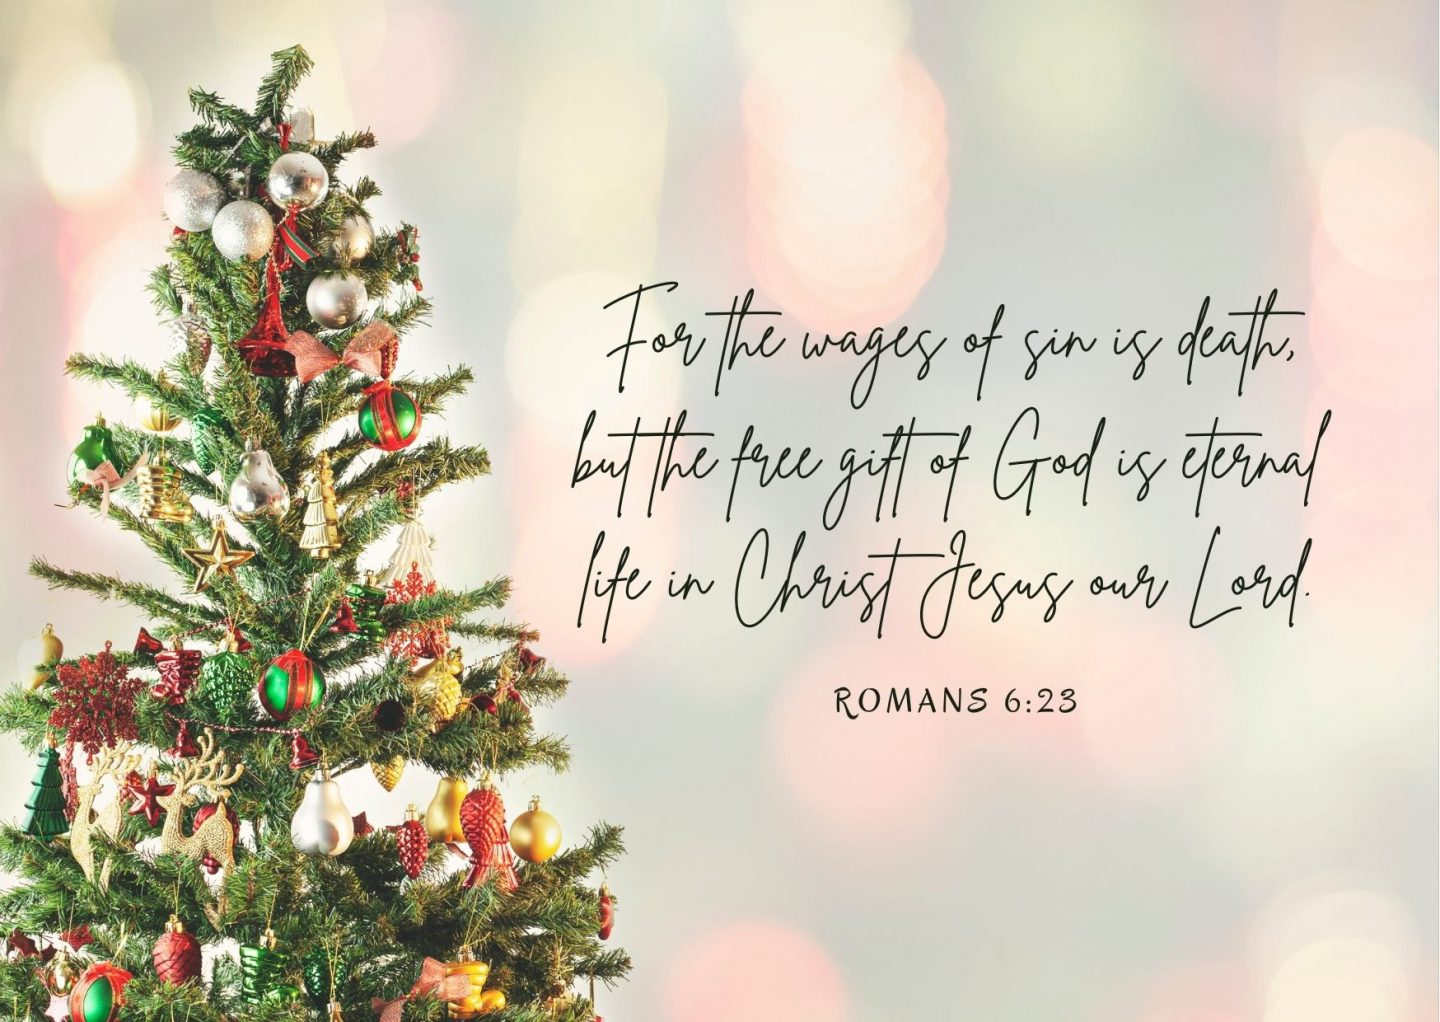 For the wages of sin is death, but the free gift of God is eternal life in Christ Jesus our Lord. Romans 6:23